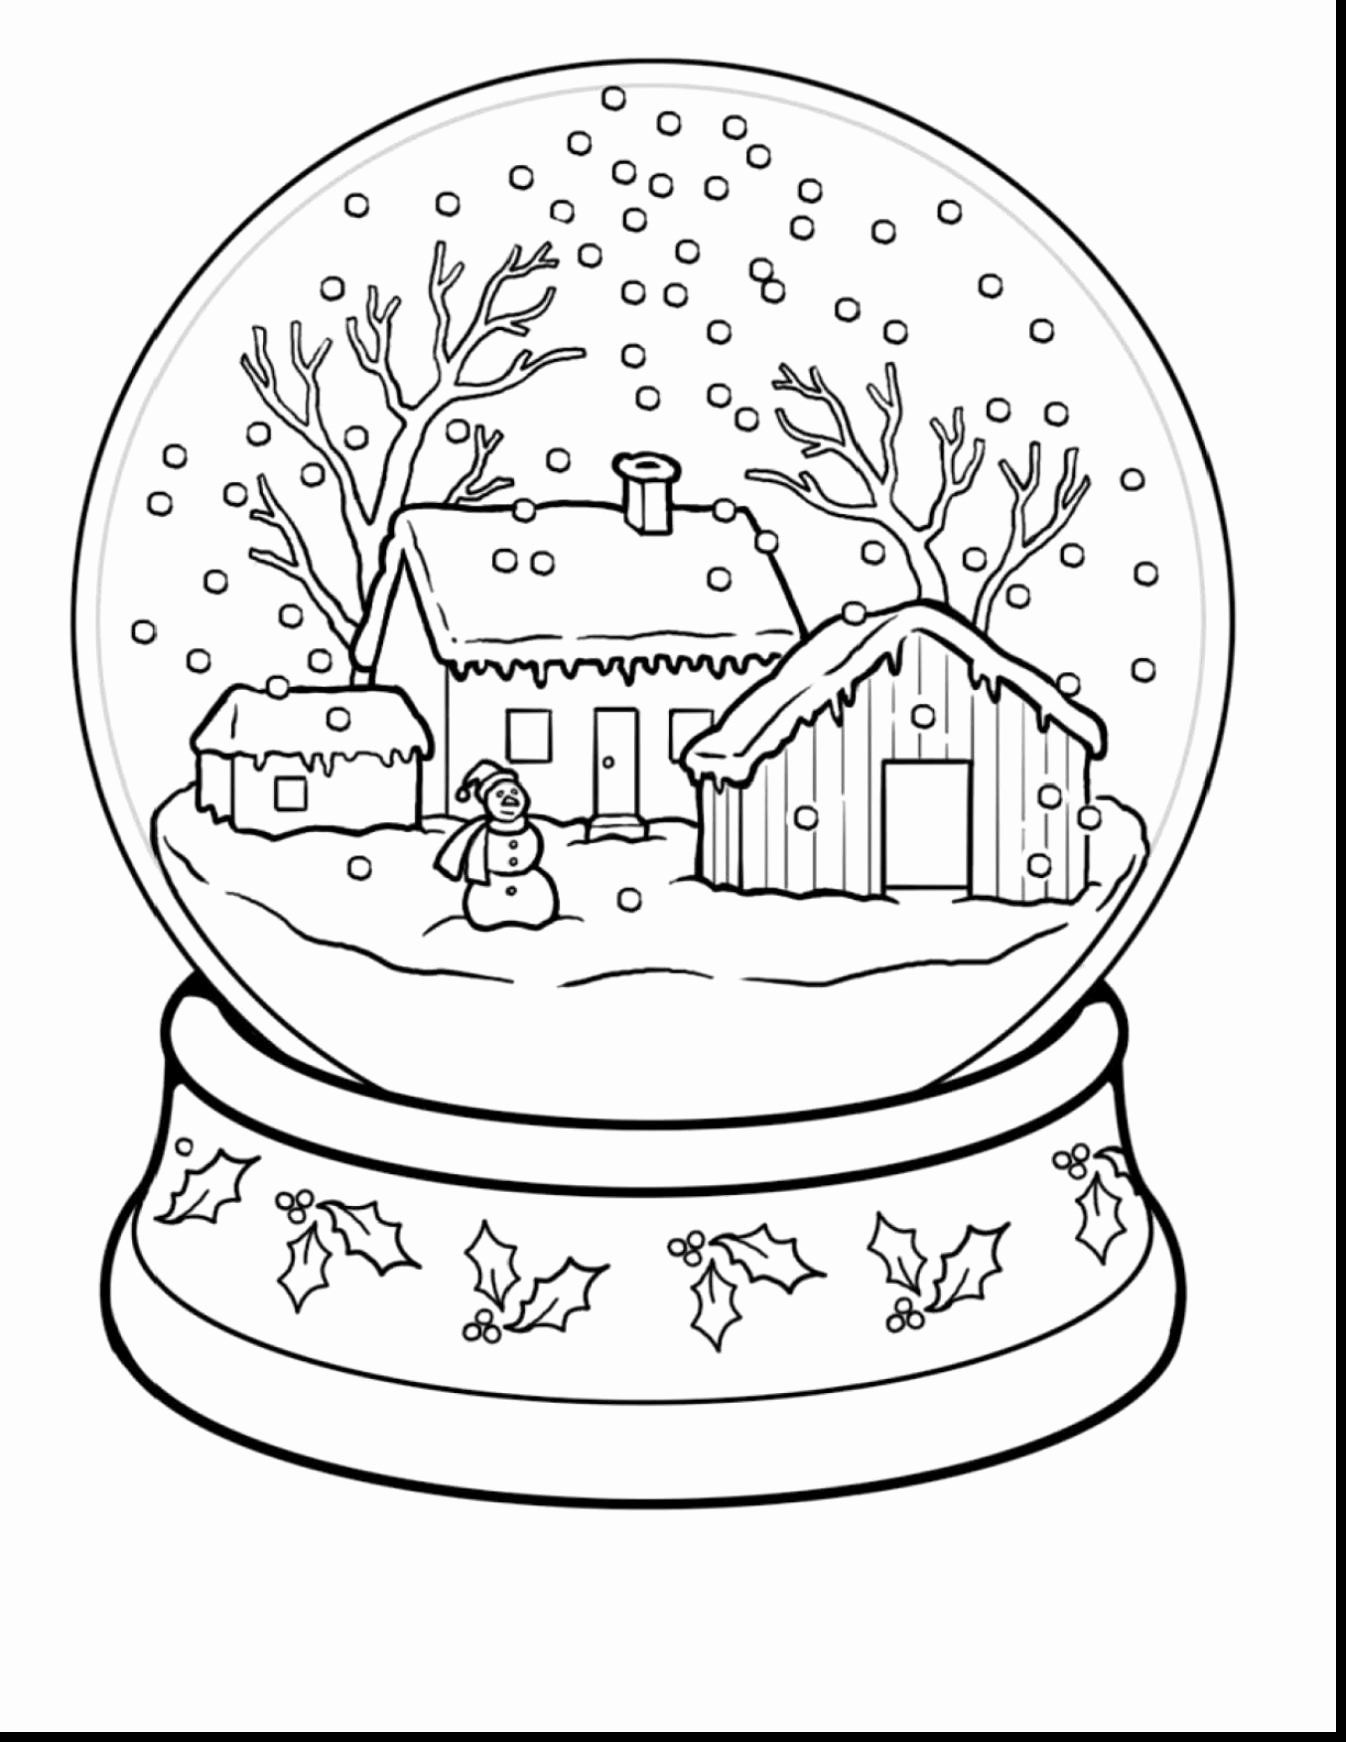 Free Colouring Pages Winter, Download Free Clip Art, Free Clip Art ... | 1742x1346